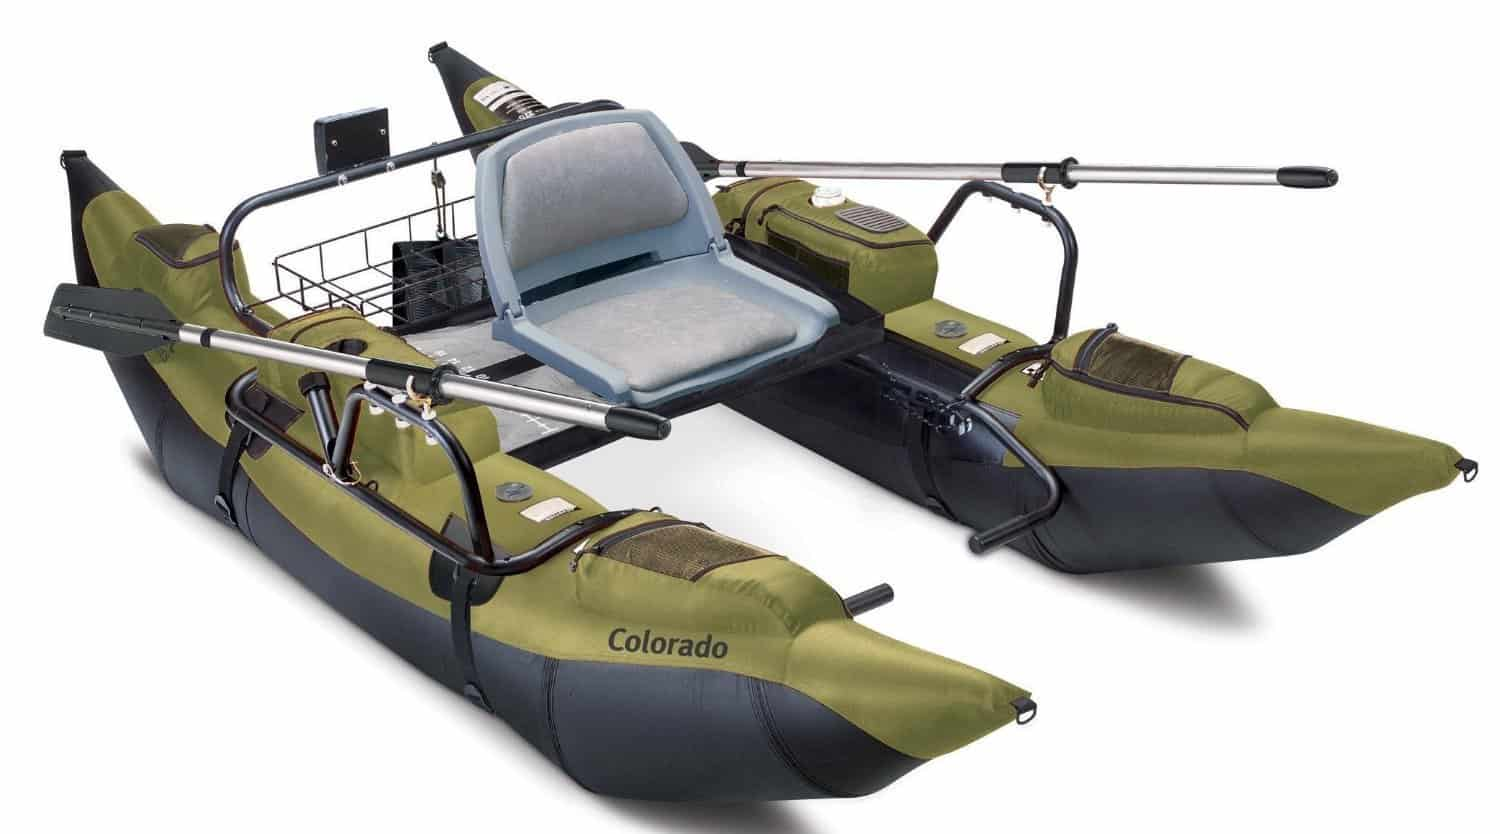 colorado pontoon